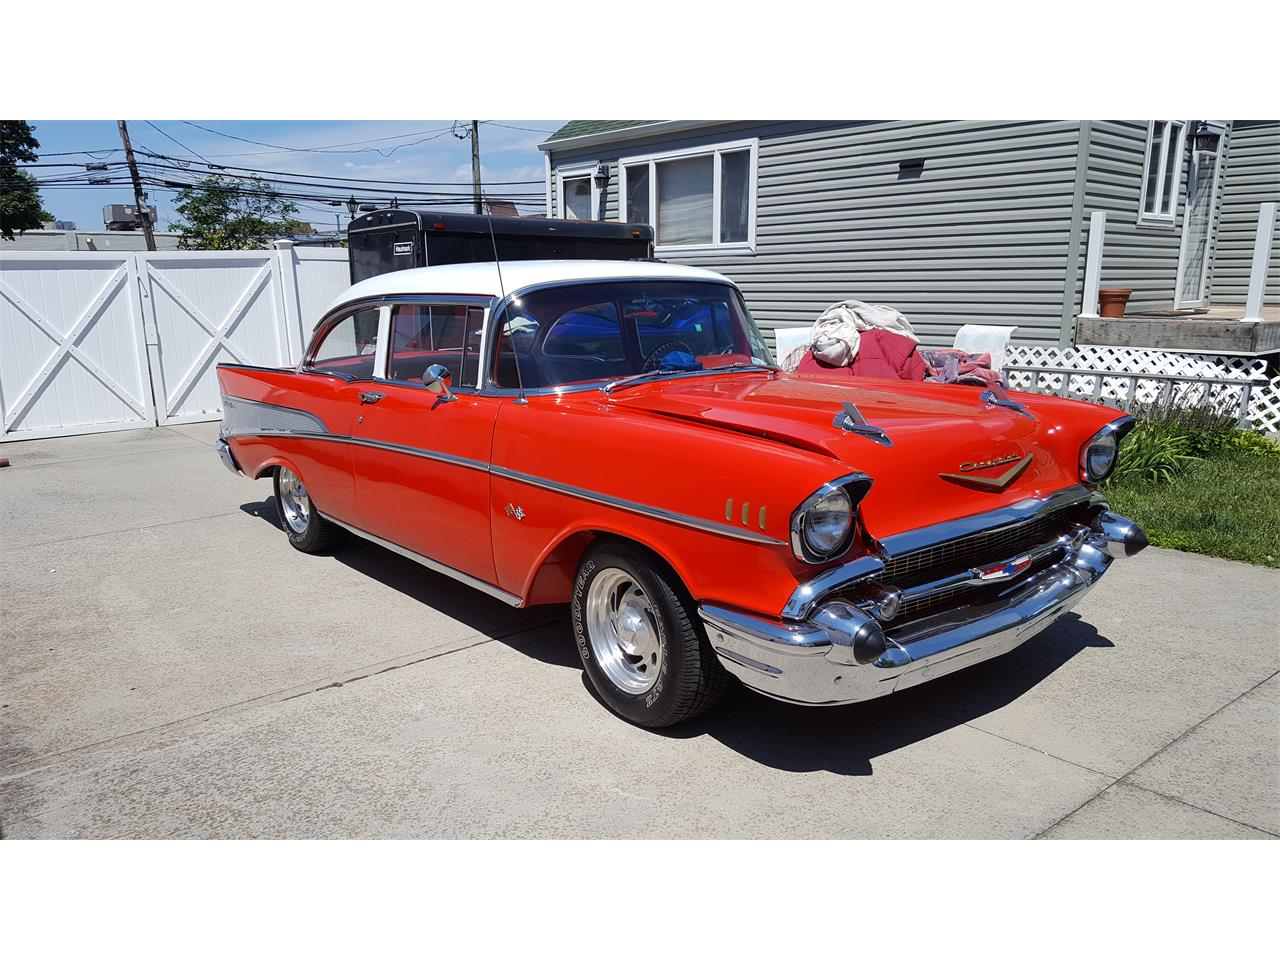 Large Picture of Classic '57 Chevrolet Bel Air located in New York - $69,999.00 - PN5I